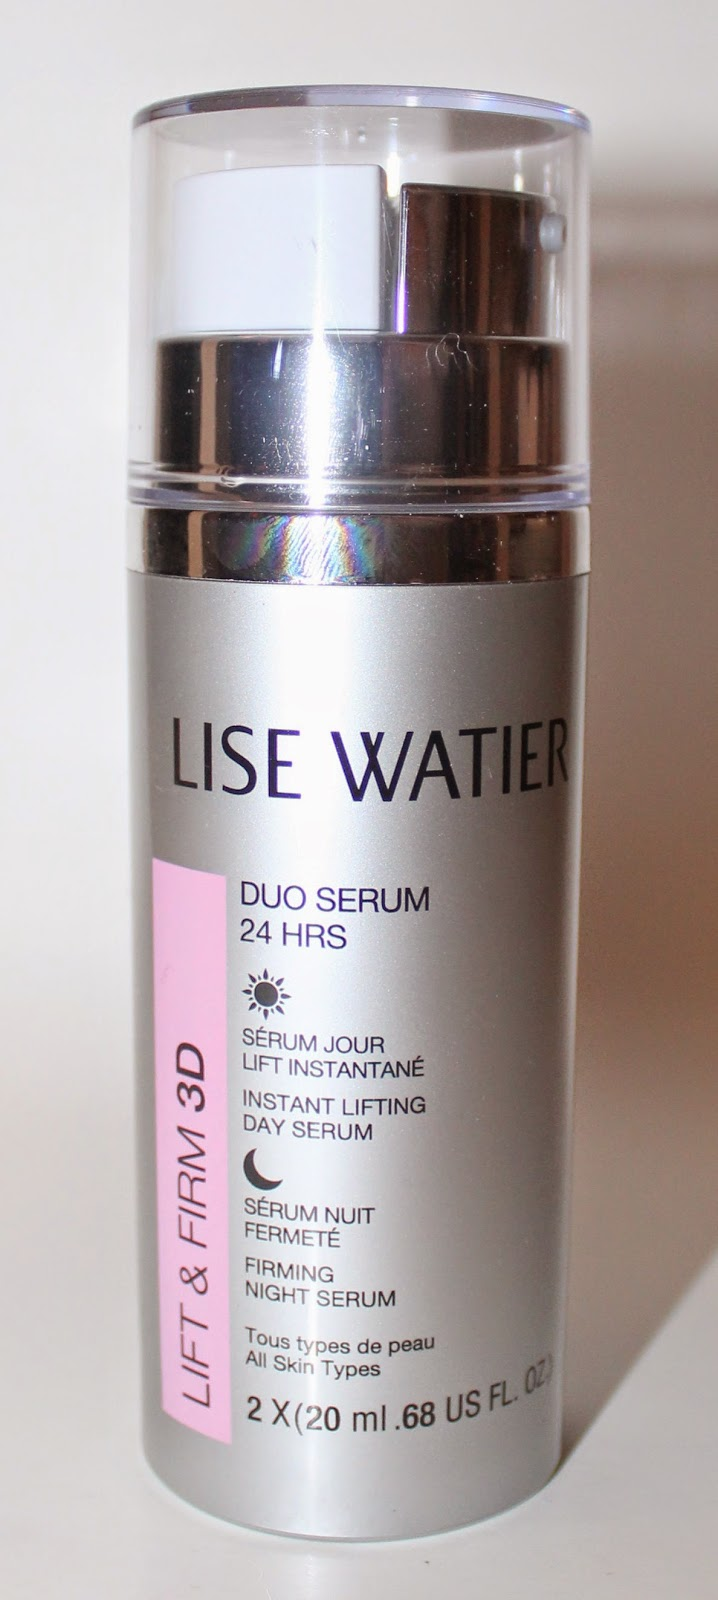 Lise Watier Duo Serum 24 HRS Lift & Firm 3D